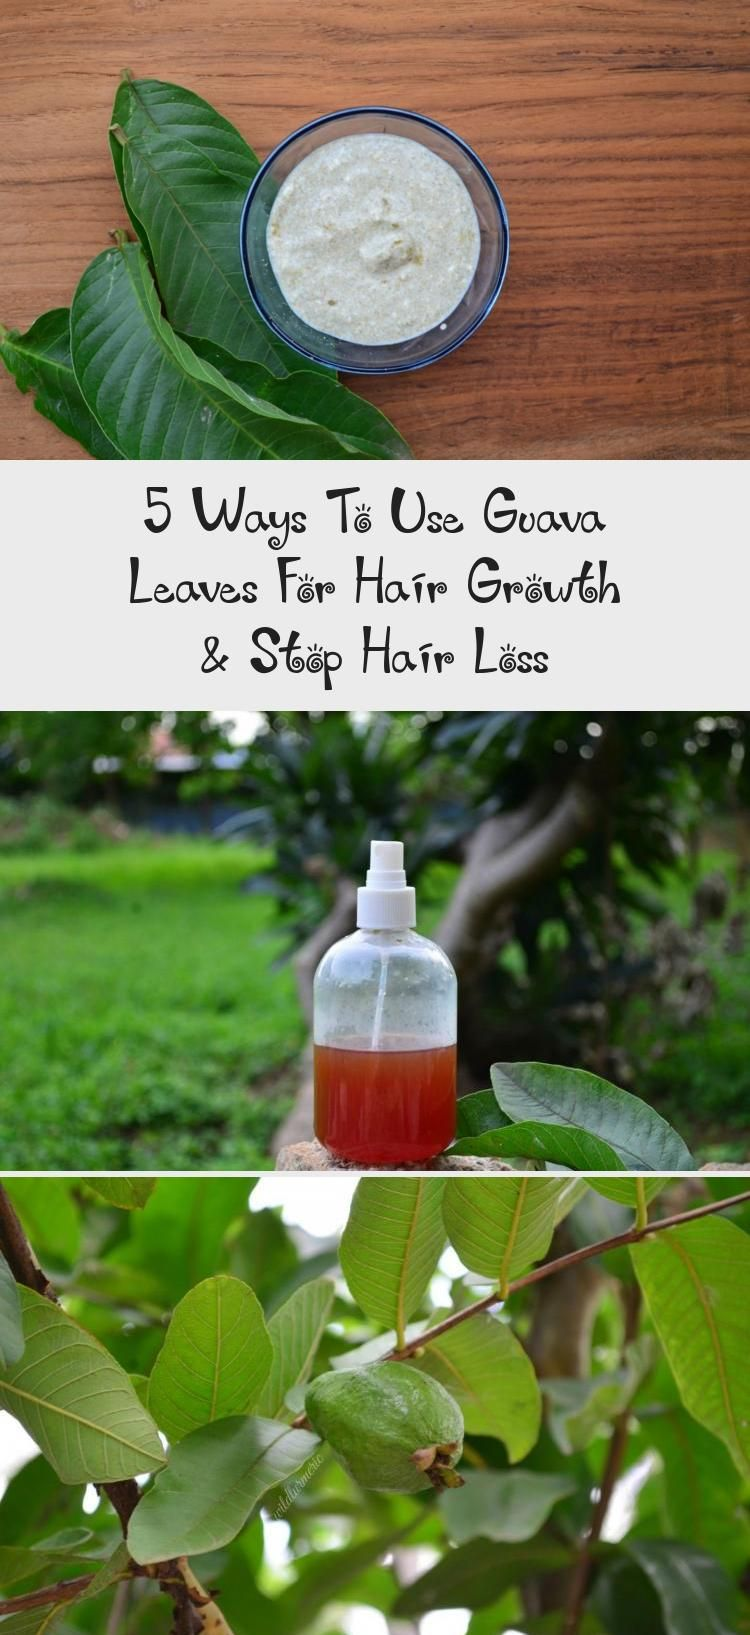 Vitamins for Hair Growth} and 5 Ways To Use Guava Leaves For Hair Growth #hairgrowthSharkTank #hairgrowthSuperFast #Stimulatehairgrowth #hairgrowthInAMonth #Sulfur8hairgrowth